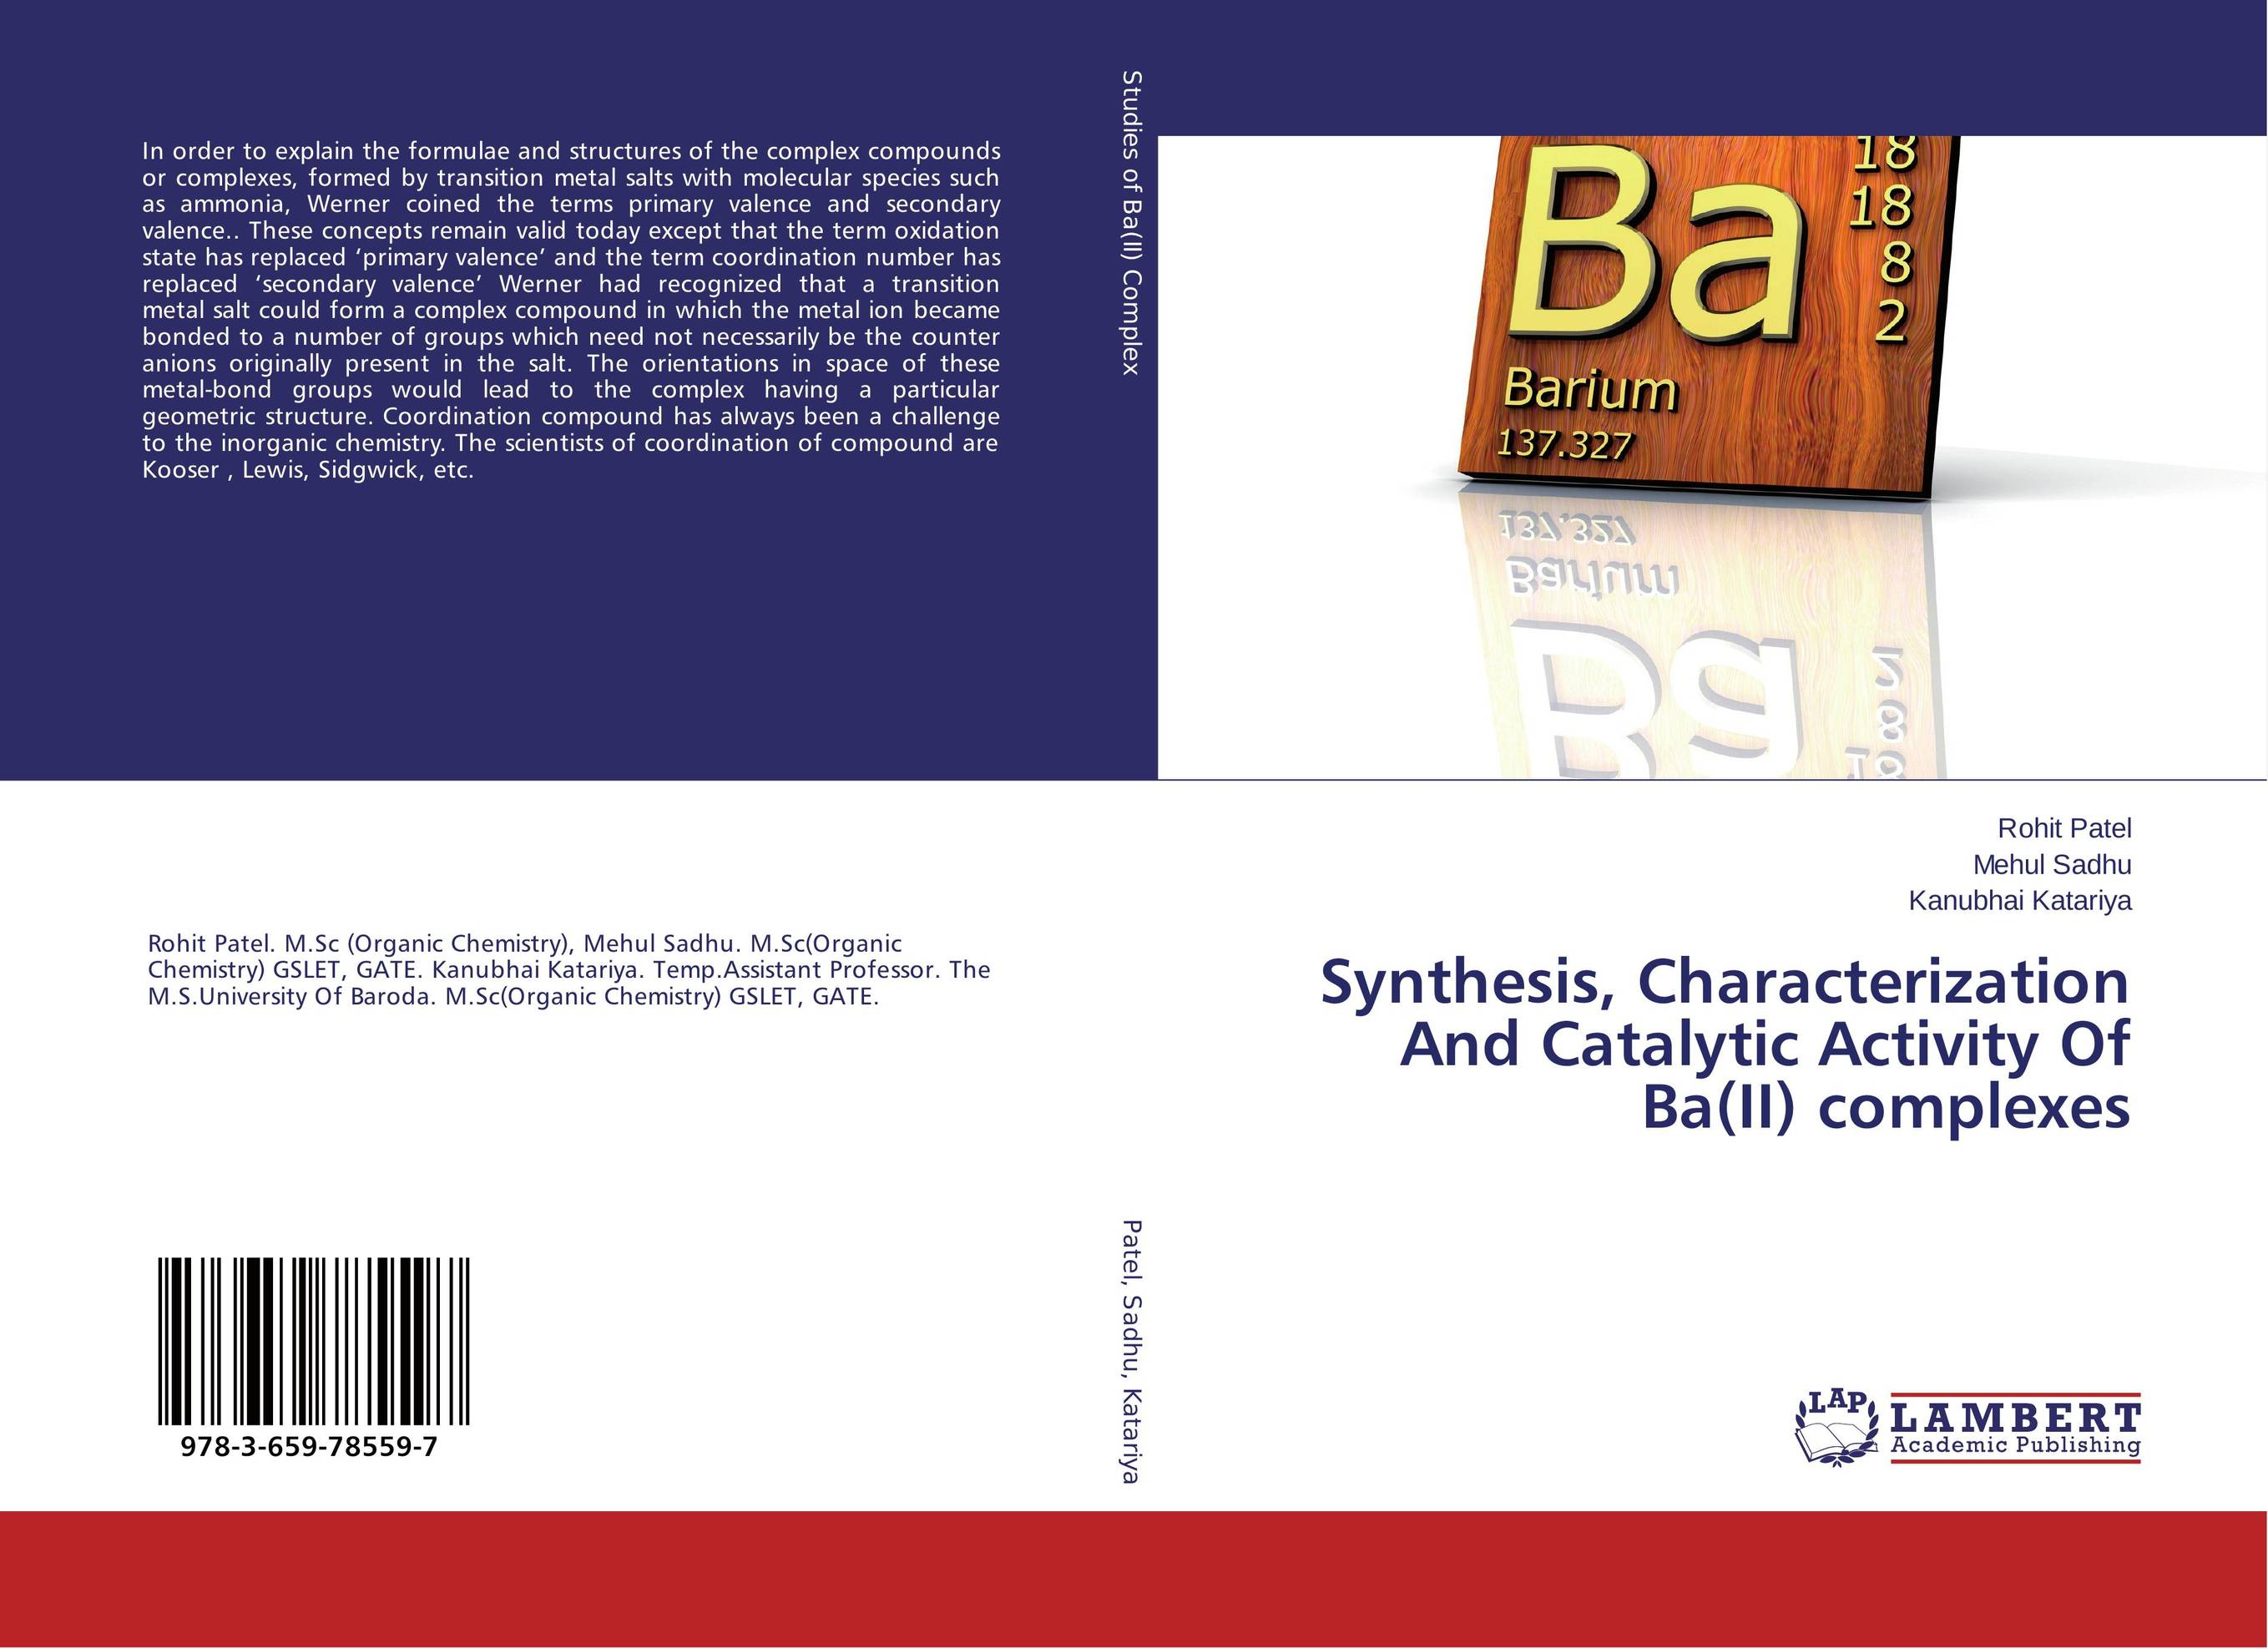 Synthesis, Characterization And Catalytic Activity Of Ba(II) complexes synthesis characterization and applications of nano cdha